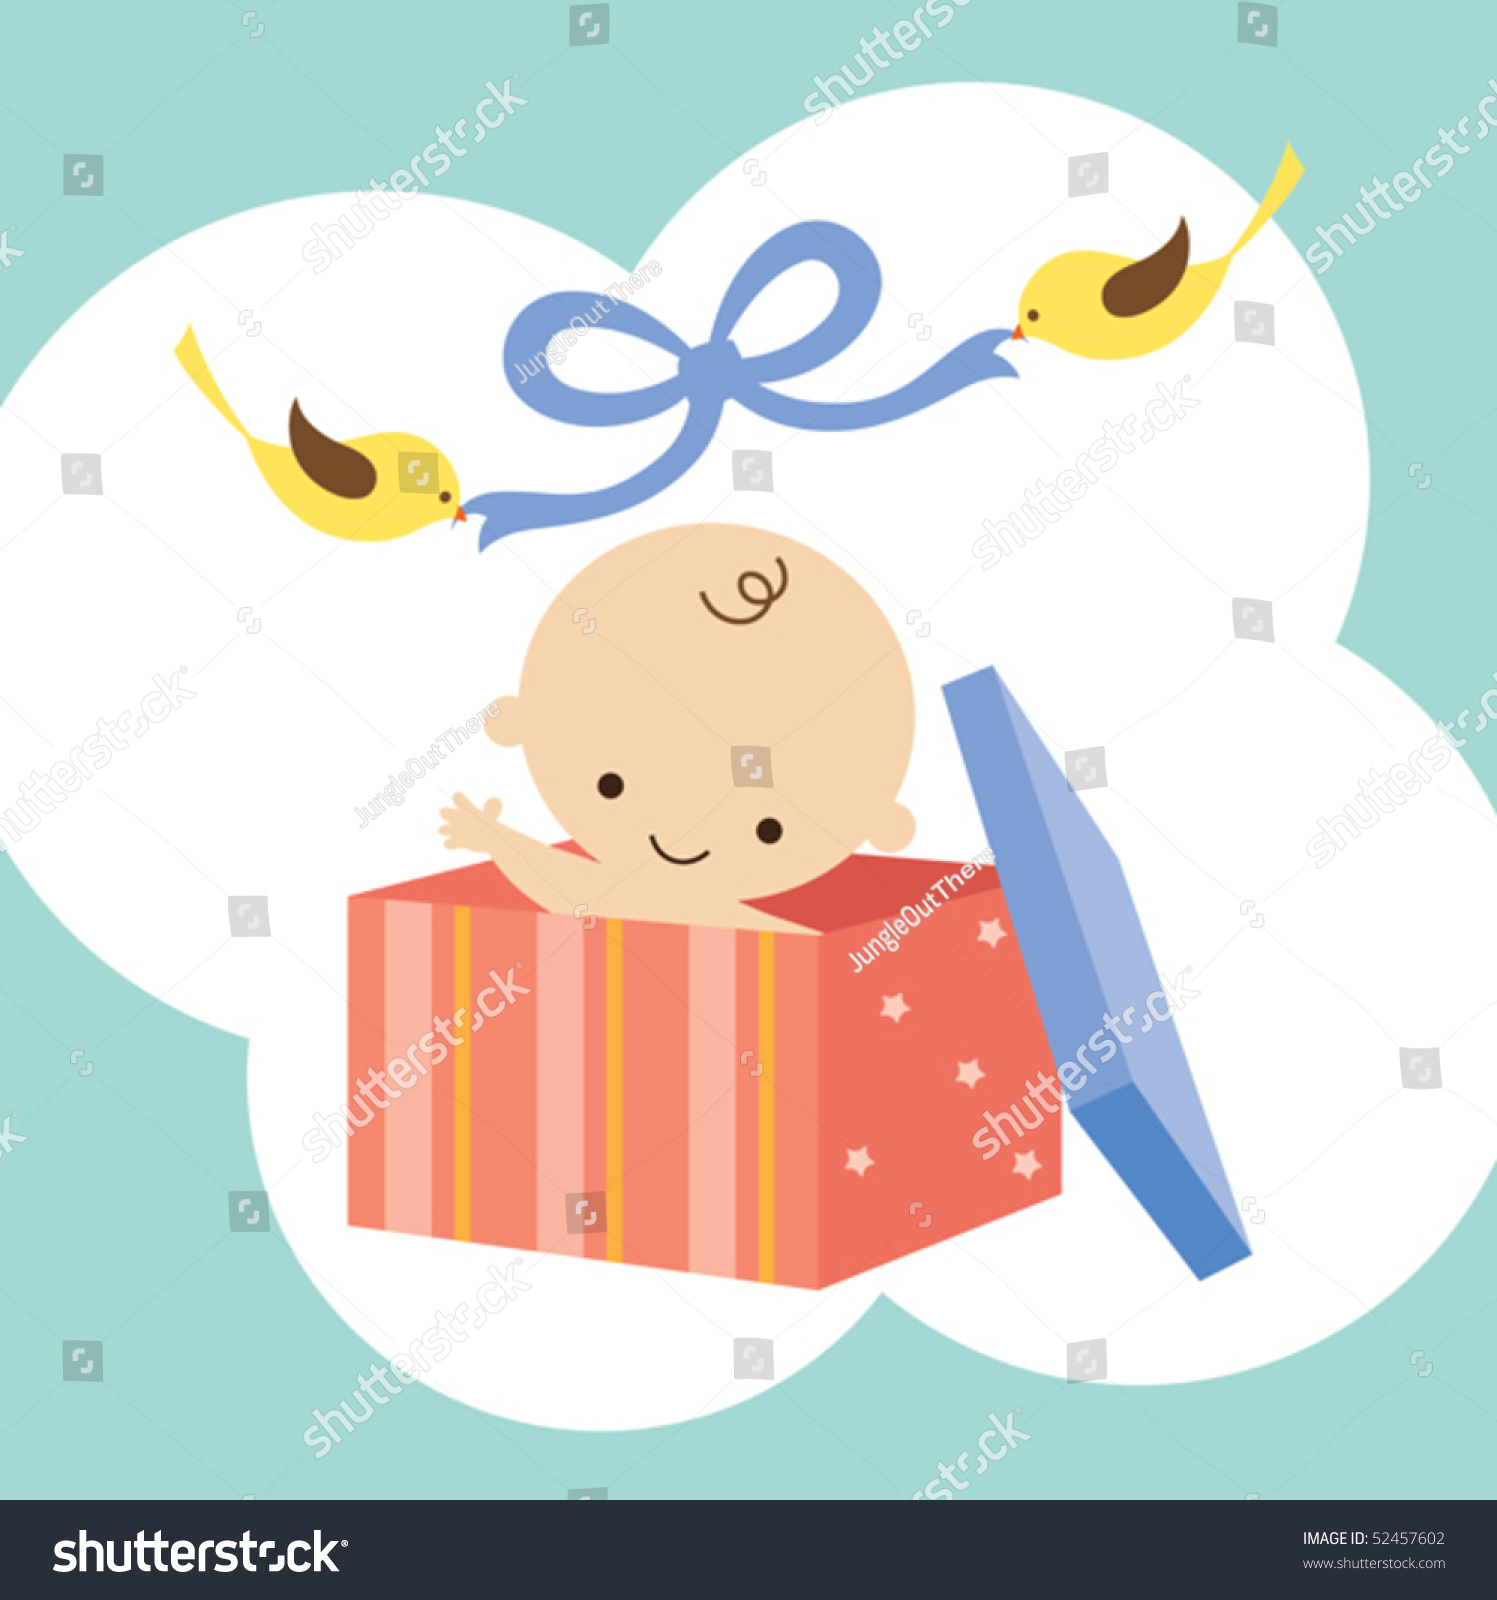 Baby Gift Vector : Vector illustration of a baby in gift box with two birds